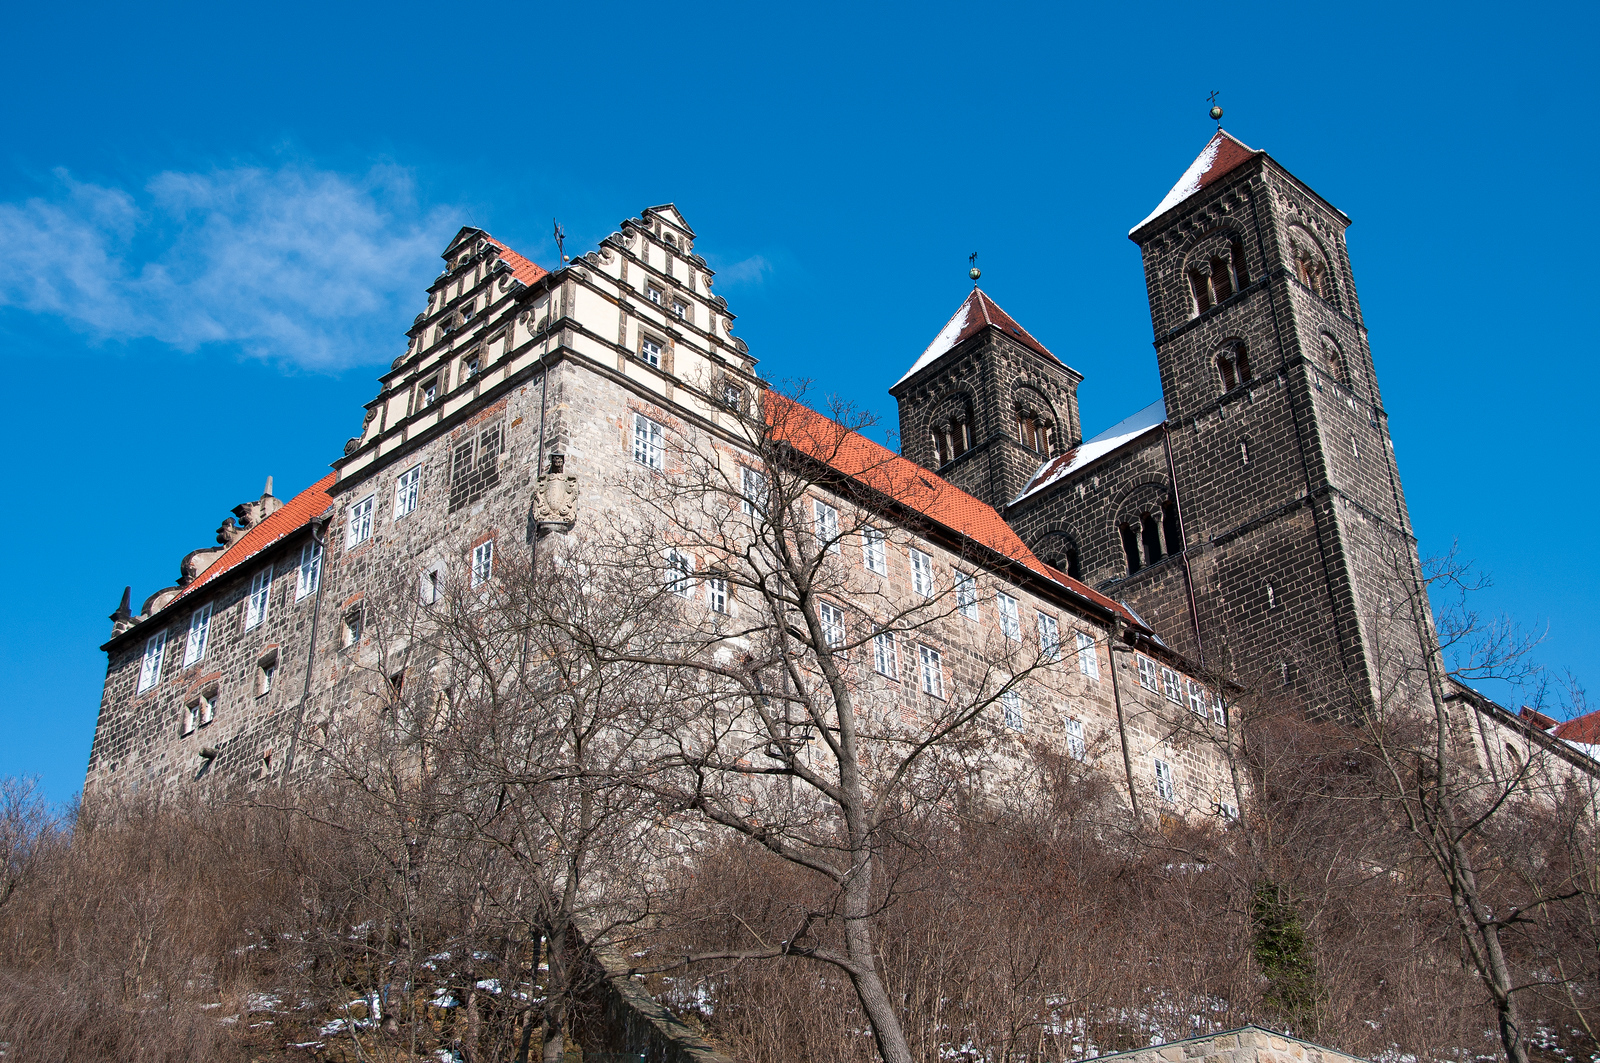 Collegiate Church, Castle, and Old Town of Quedlinburg UNESCO World Heritage Site